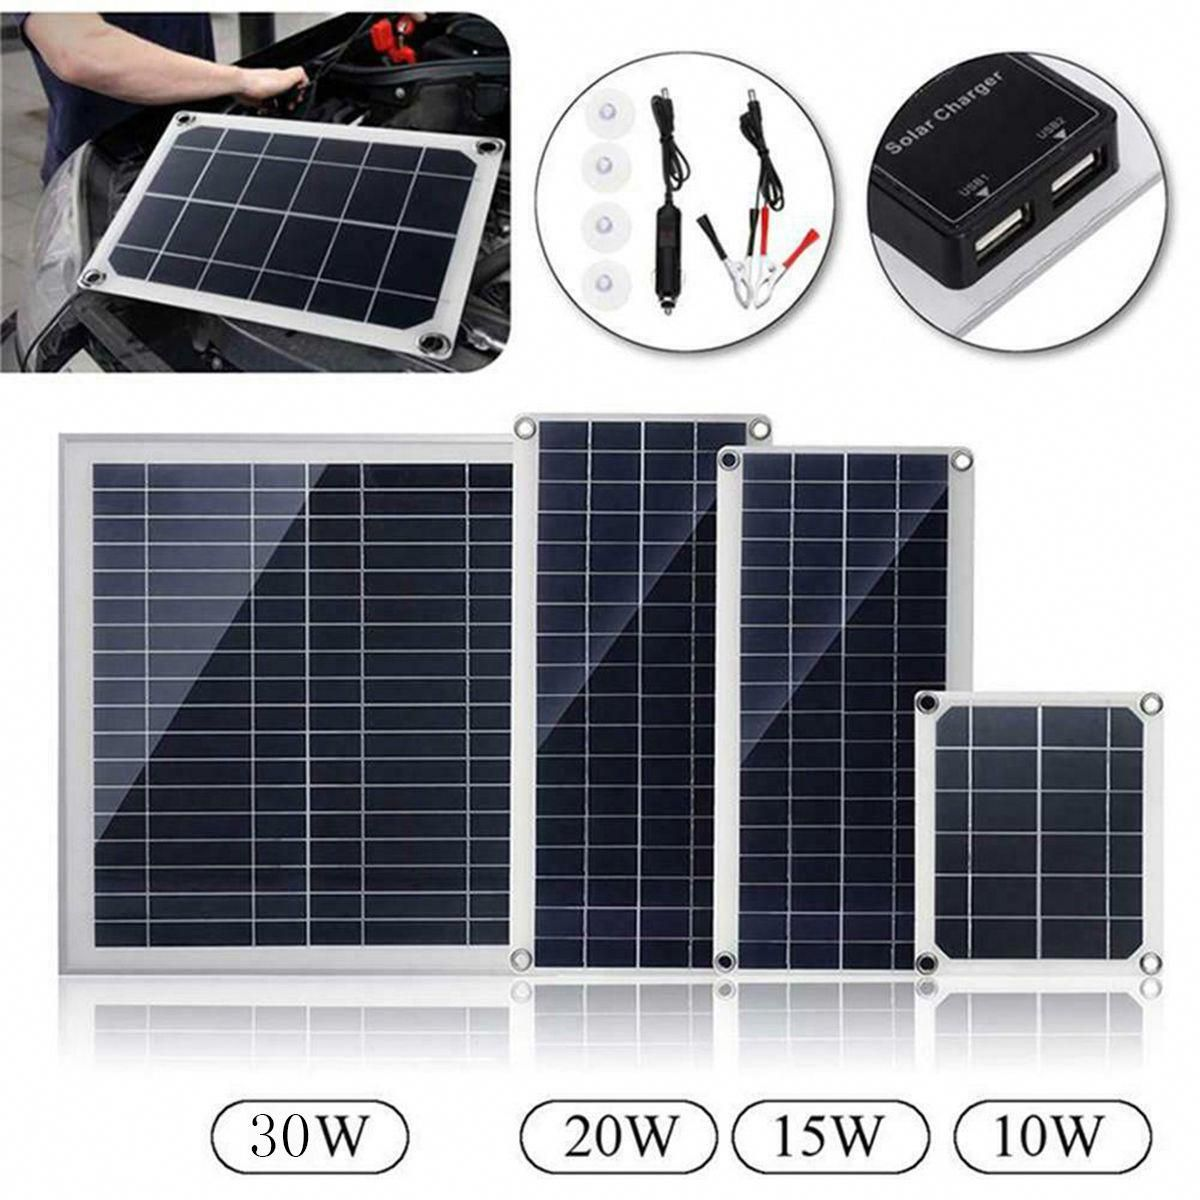 10w 15w 20w 30w 18v Dc Flexible Polycrystalline Solar Panel With Usb Connect In 2020 Solar Charger Solar Panels Flexible Solar Panels